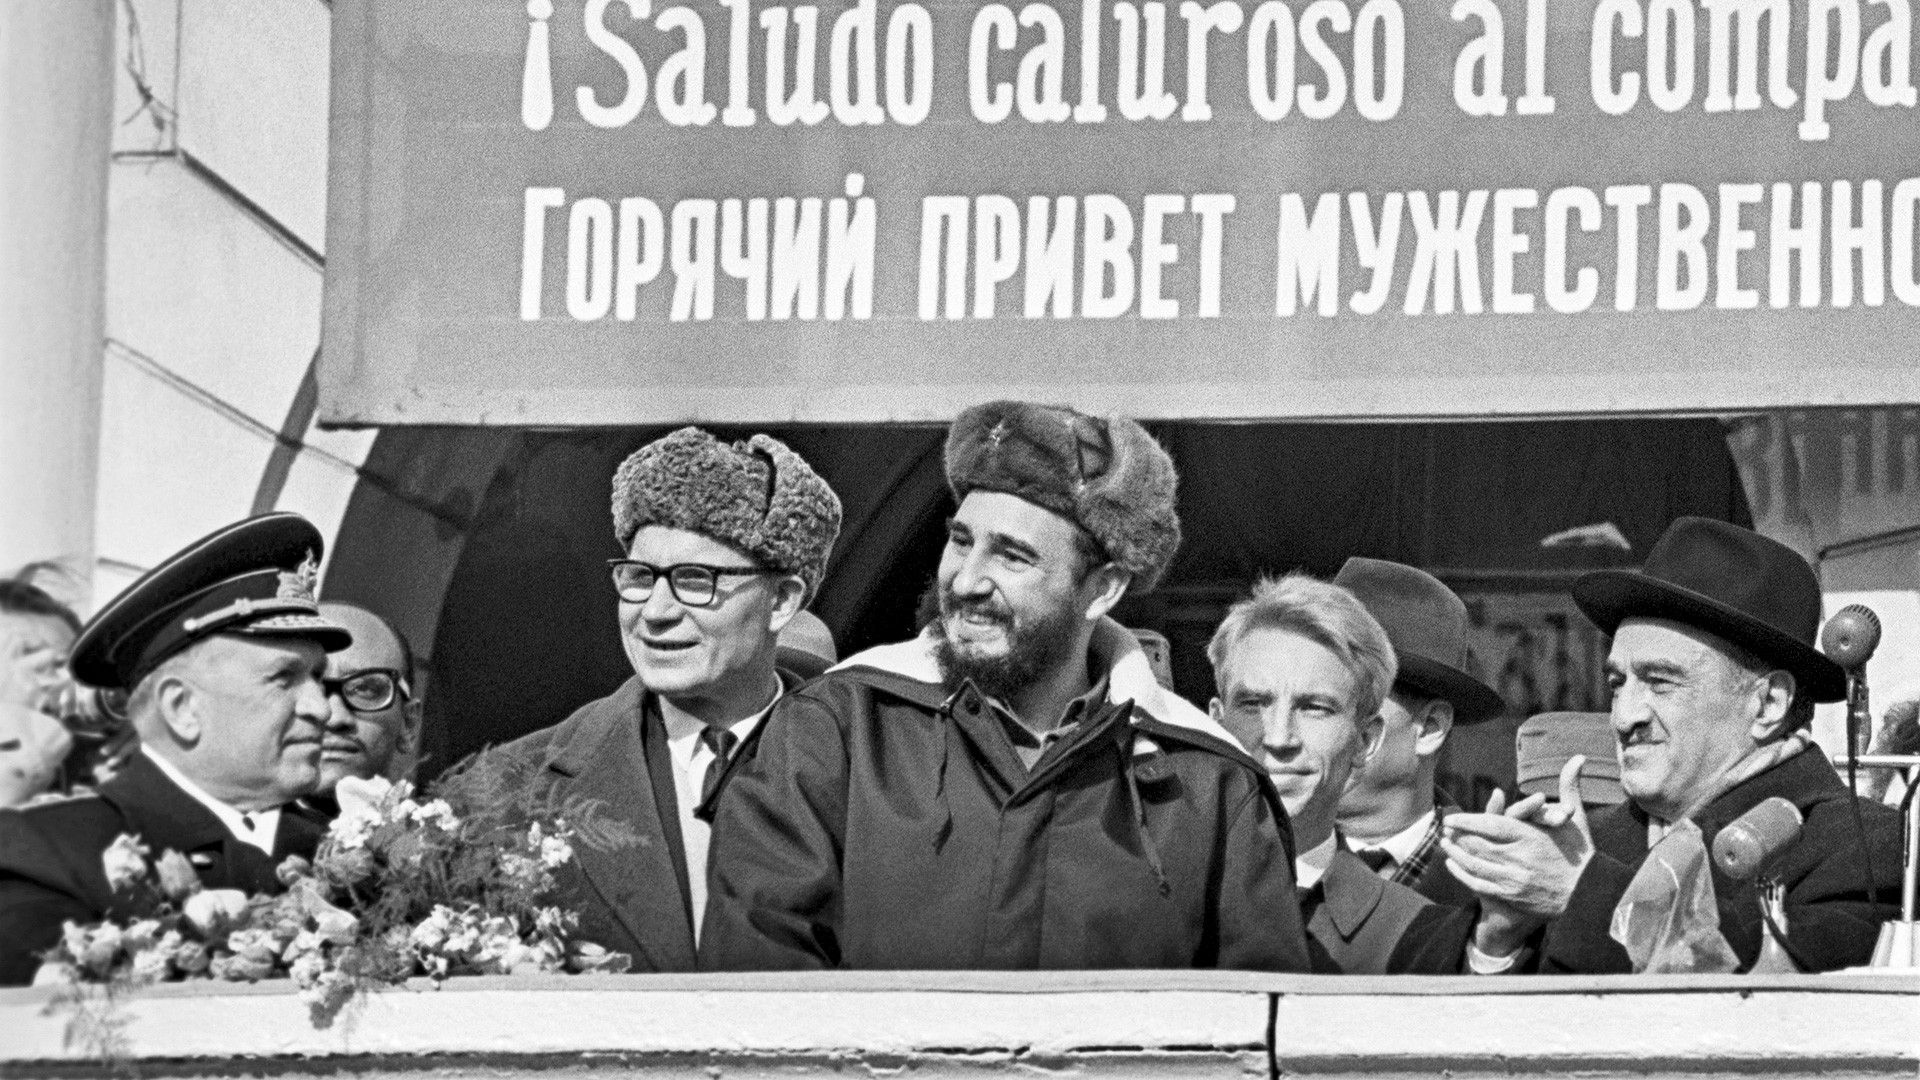 Fidel Castro's visit to the USSR, Murmansk, 1963